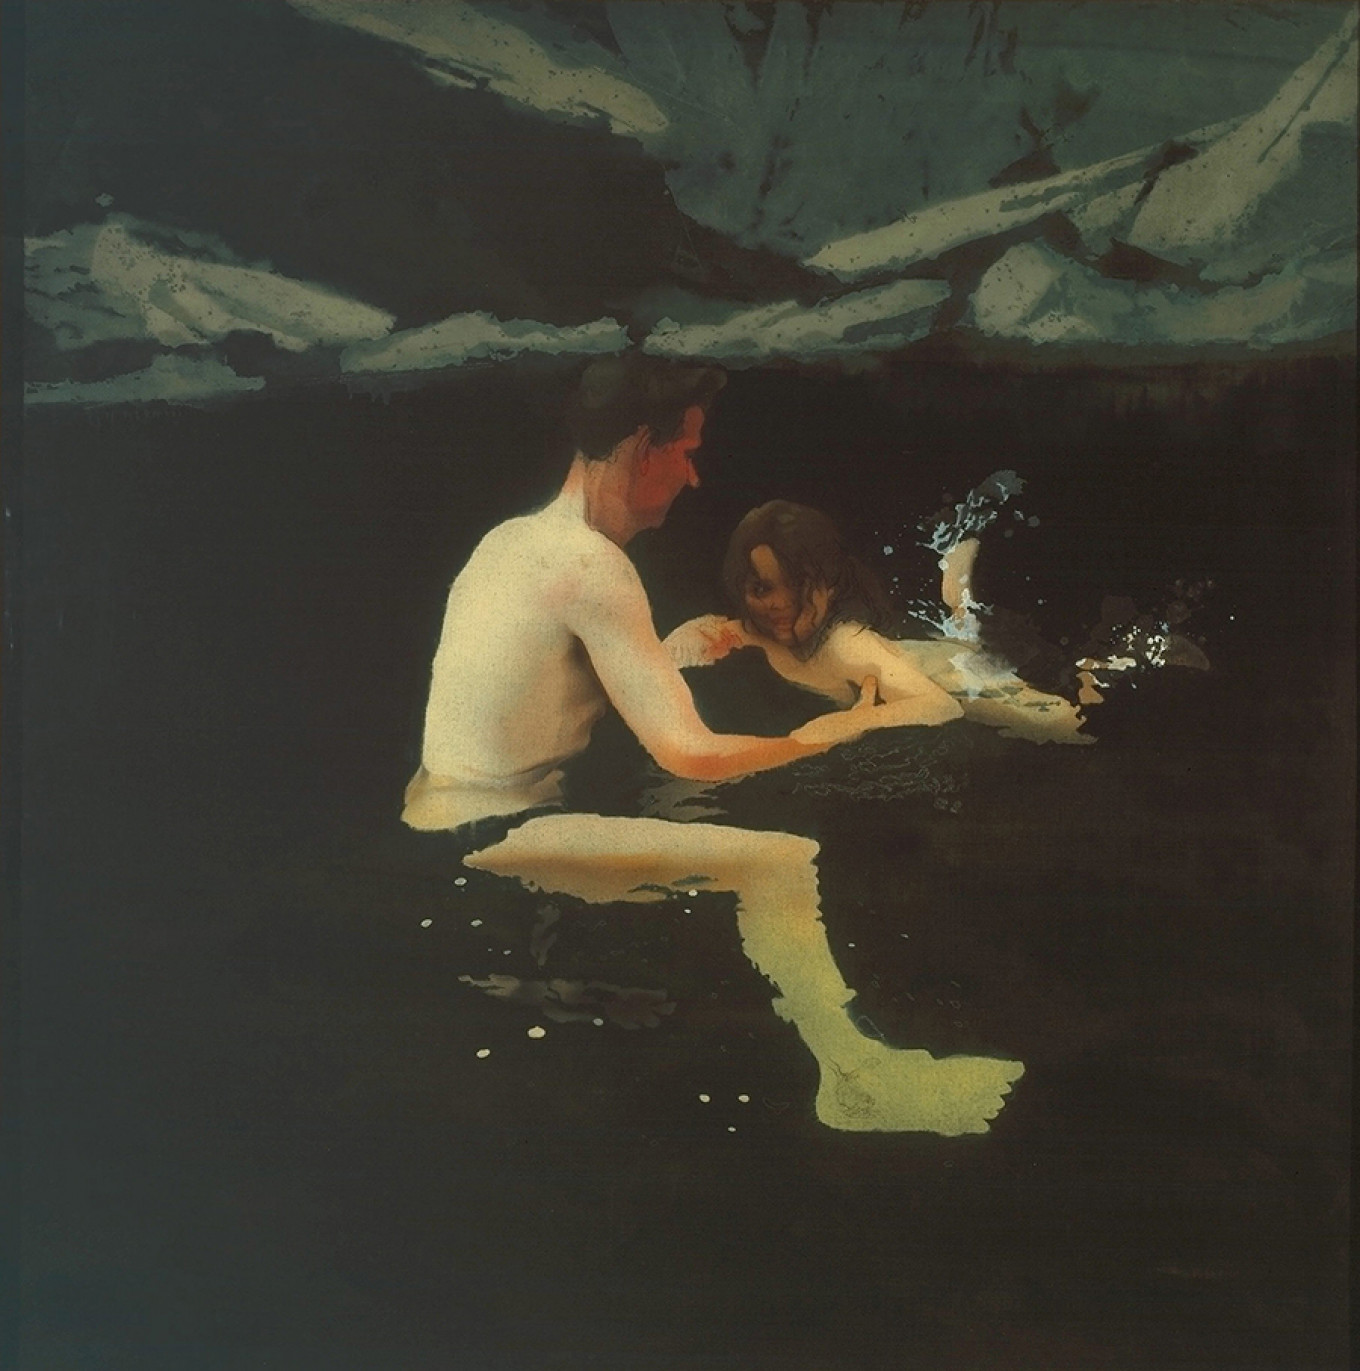 """""""Melanie and Me Swimming,"""" Michael Andrews, 1978-79 © Tate© The Estate of Michael Andrews / Courtesy James Hyman Gallery, London"""